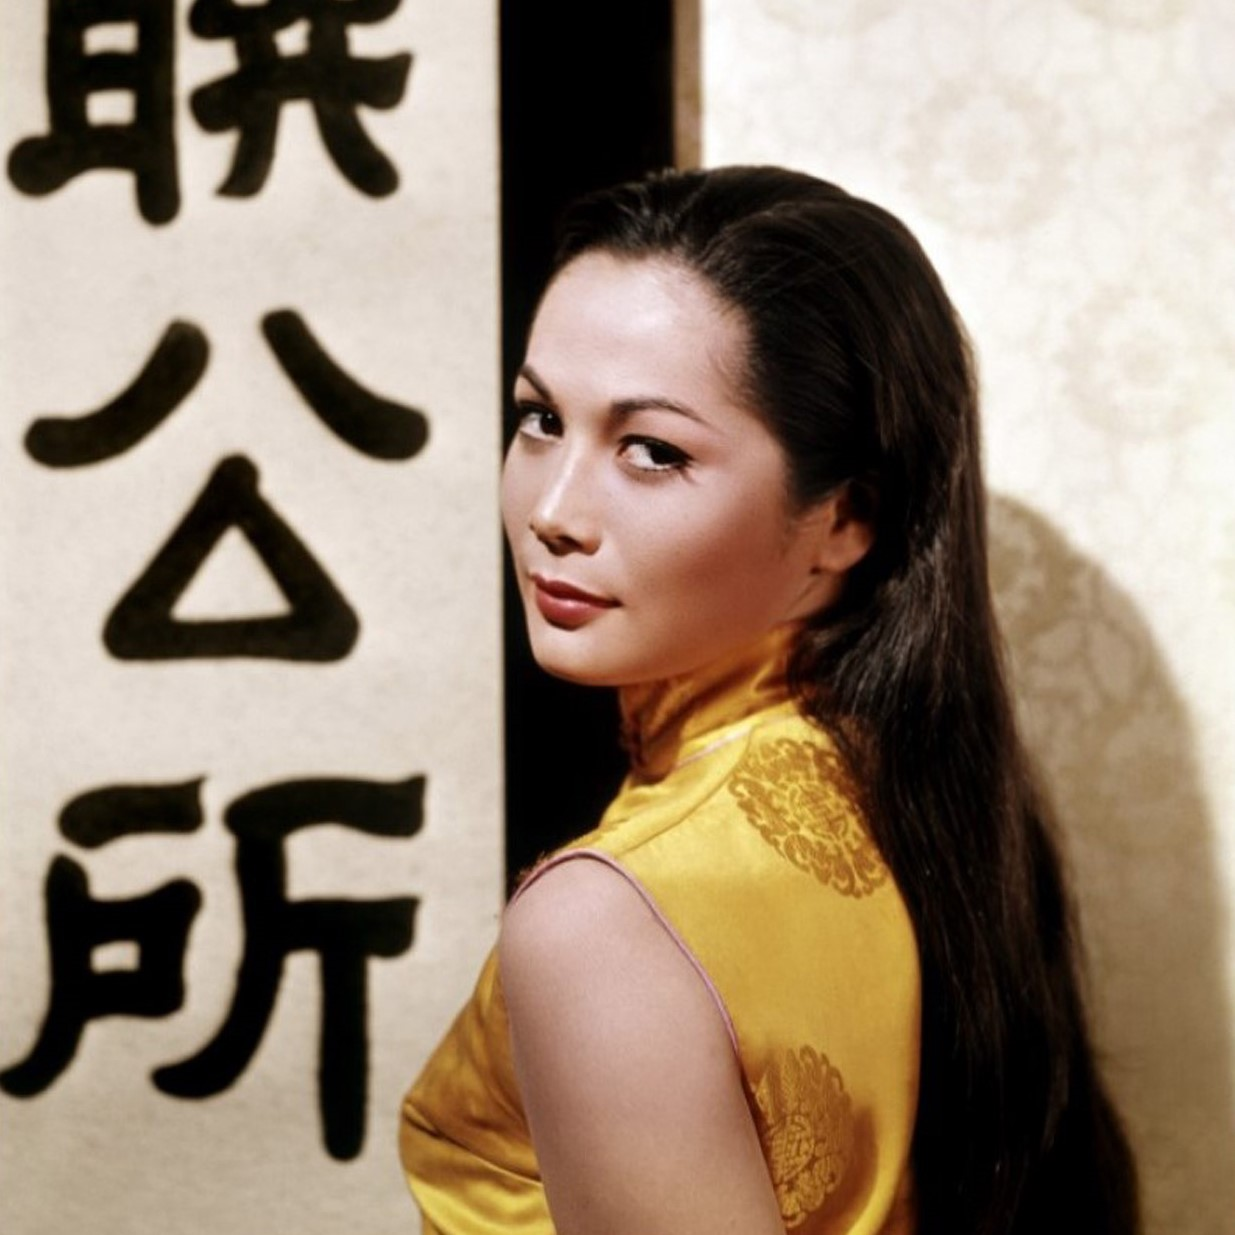 Nancy Kwan naked (27 photo), Sexy, Cleavage, Instagram, braless 2019